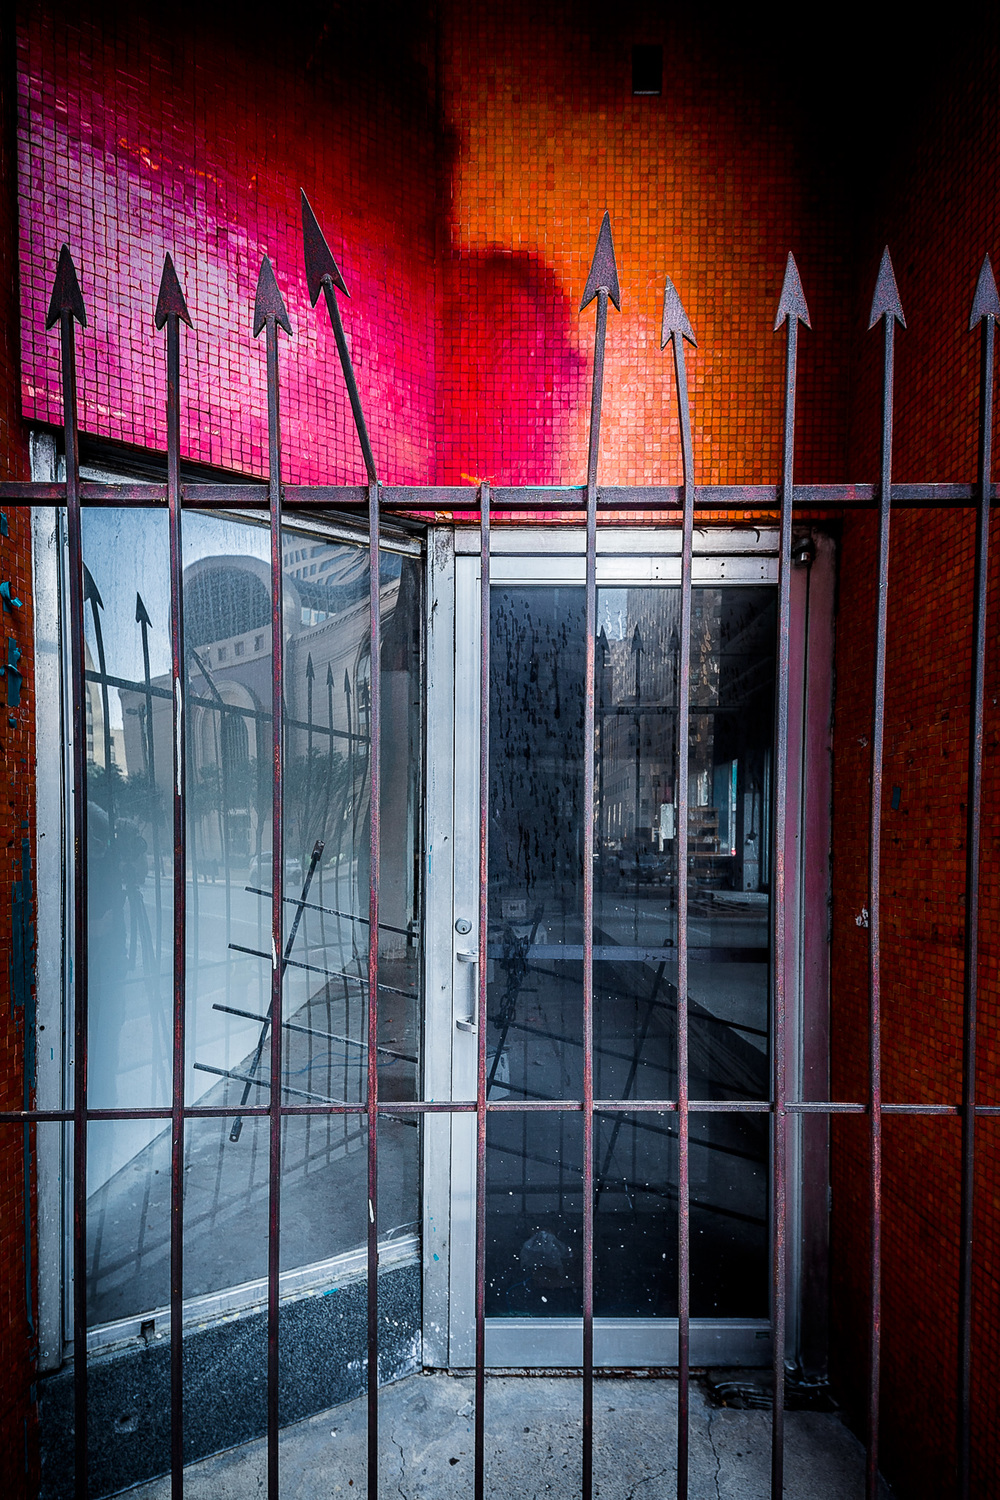 Mosaic-Behind-Bars.jpg